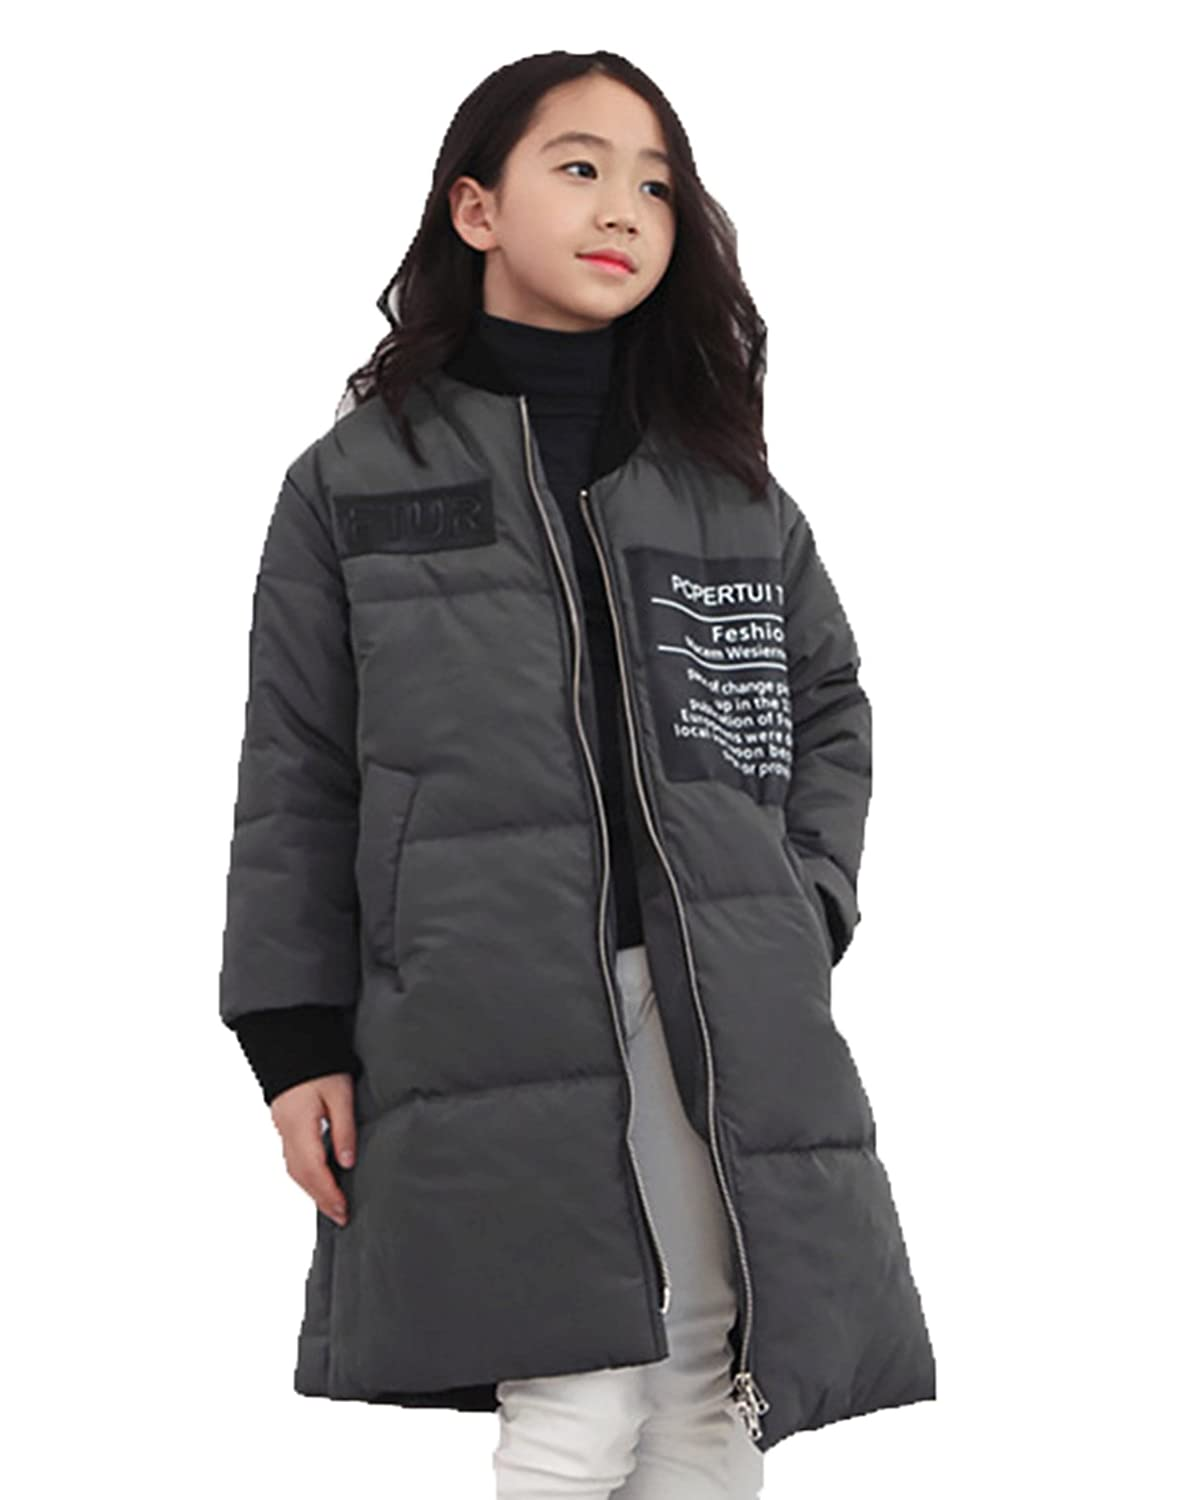 70f934d90 Amazon.com  Lemonkids Junior Girls Chic Warm Anorak Winter Outfit ...